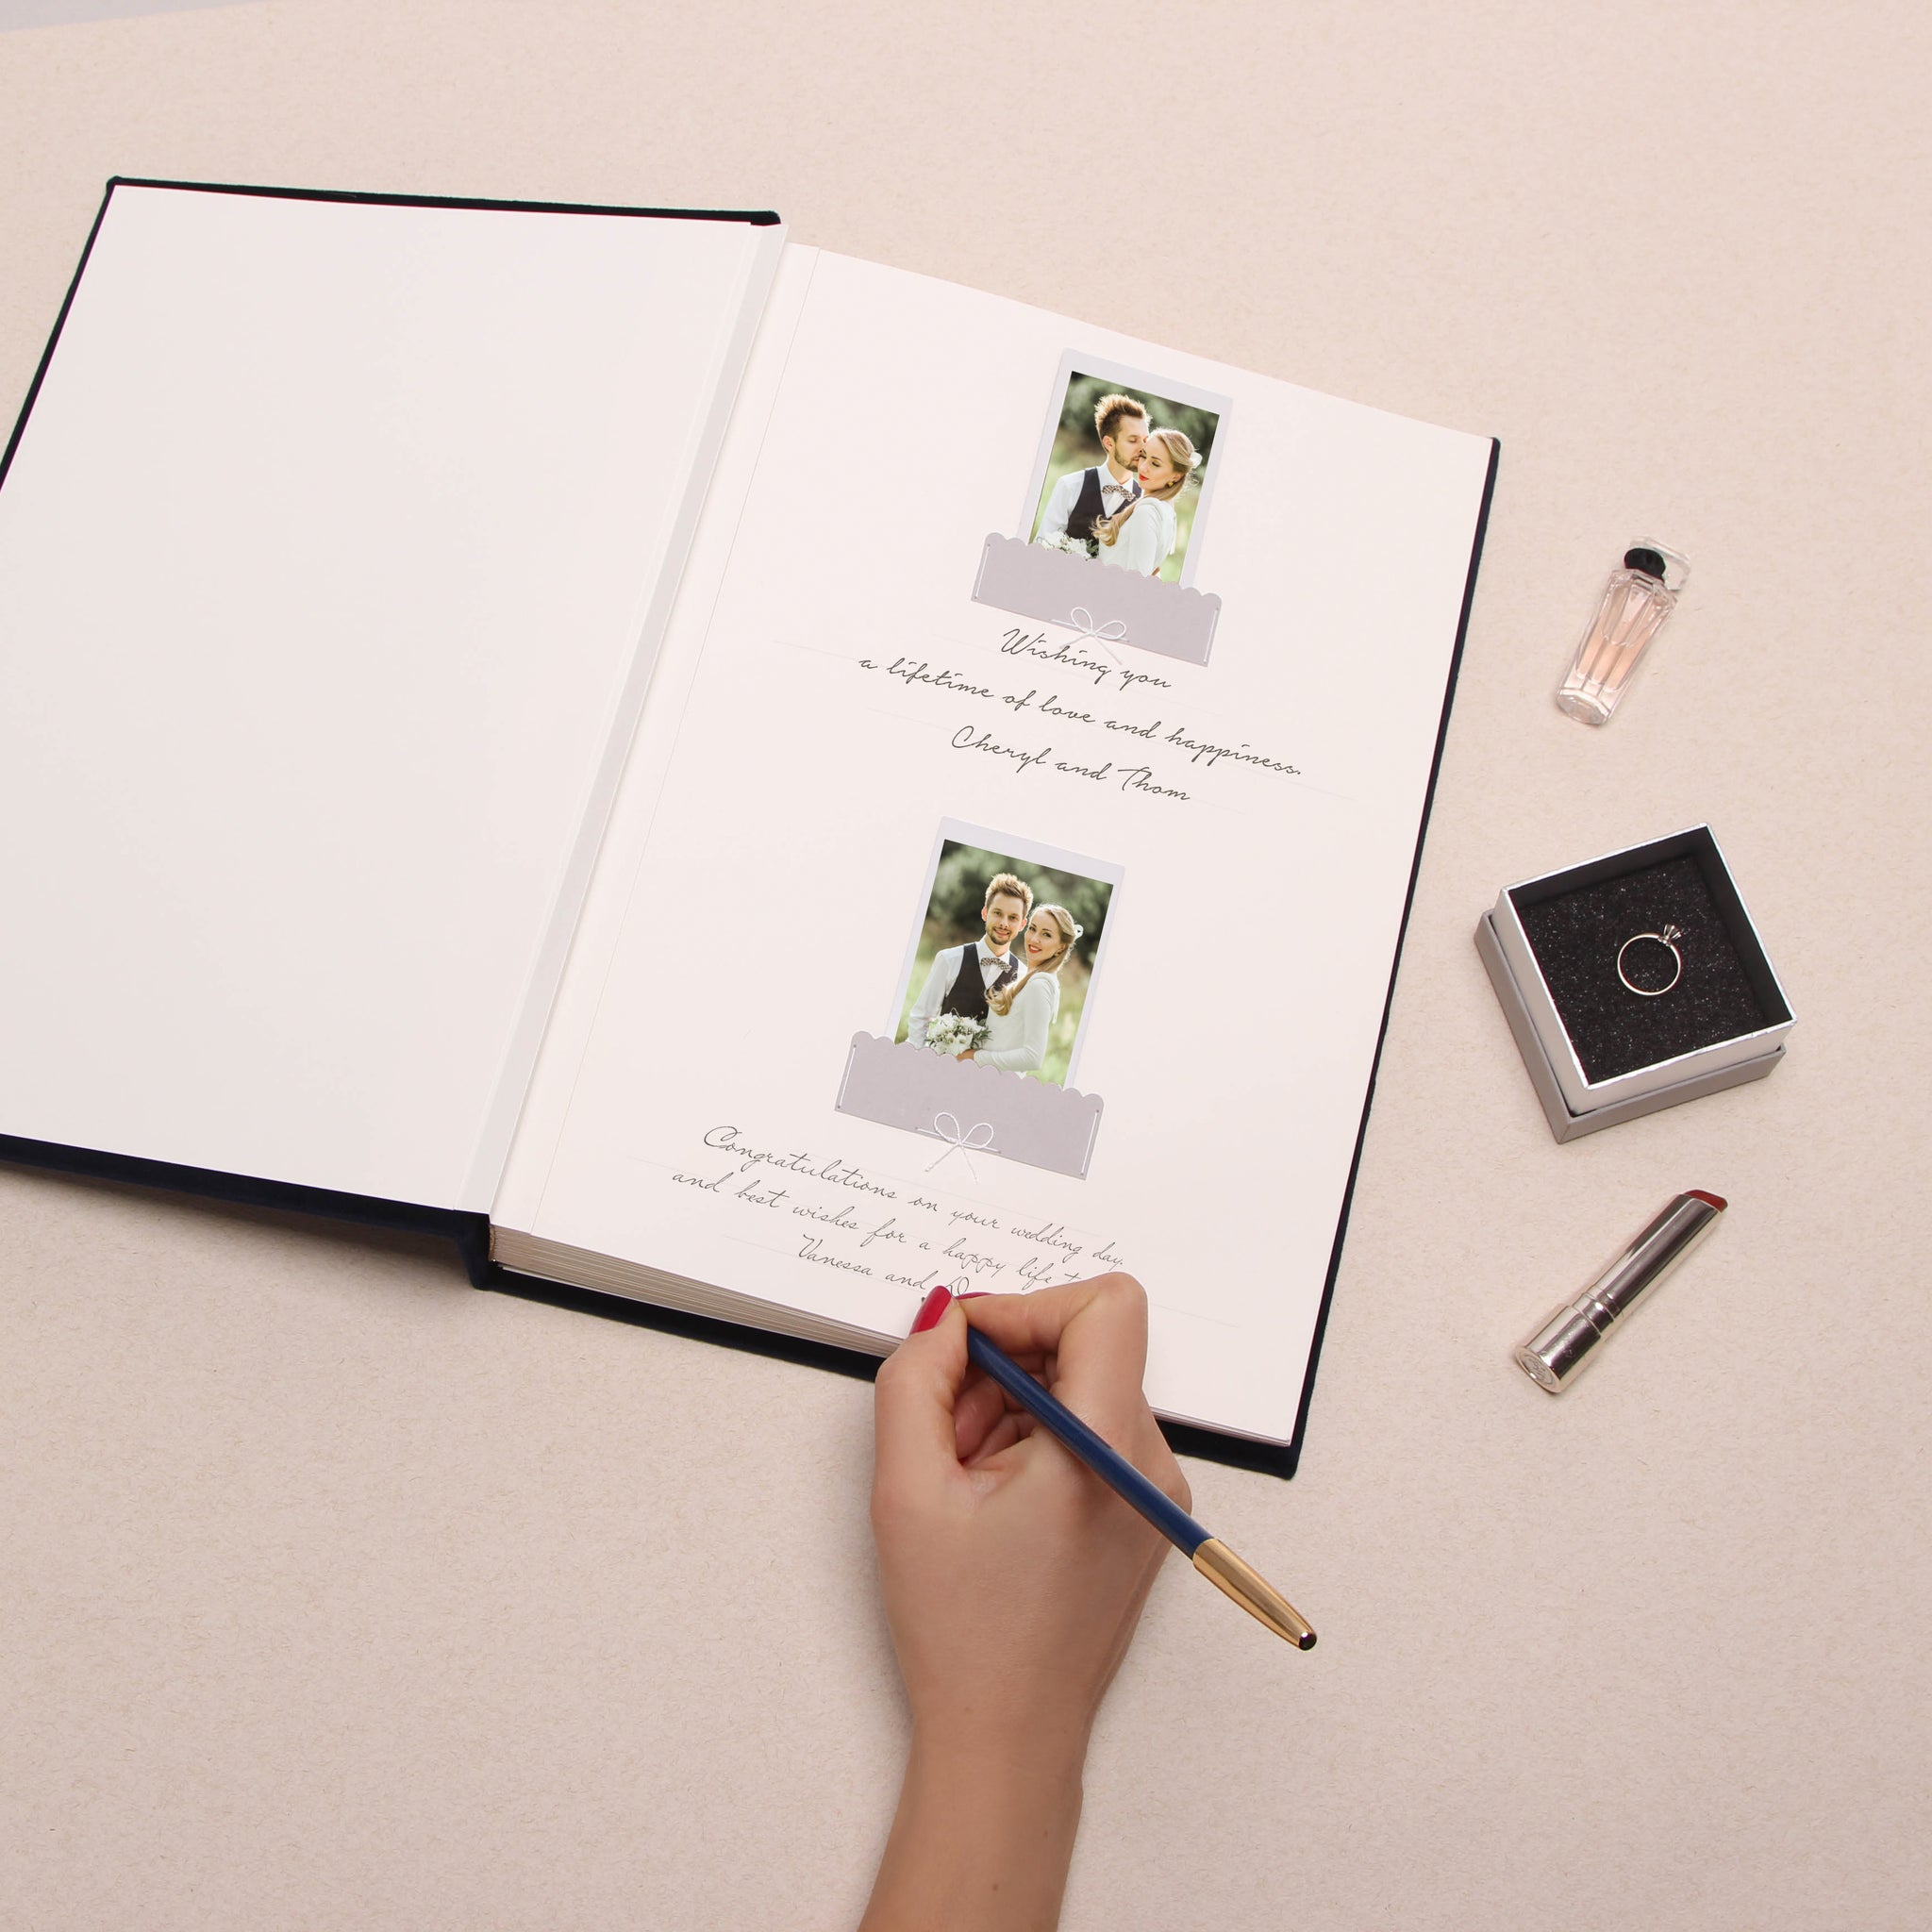 Alternative Wedding Guestbook Navy Blue Velour Album With Real Gold Lettering, Instax photo album, Birthday Album - by Liumy - Liumy